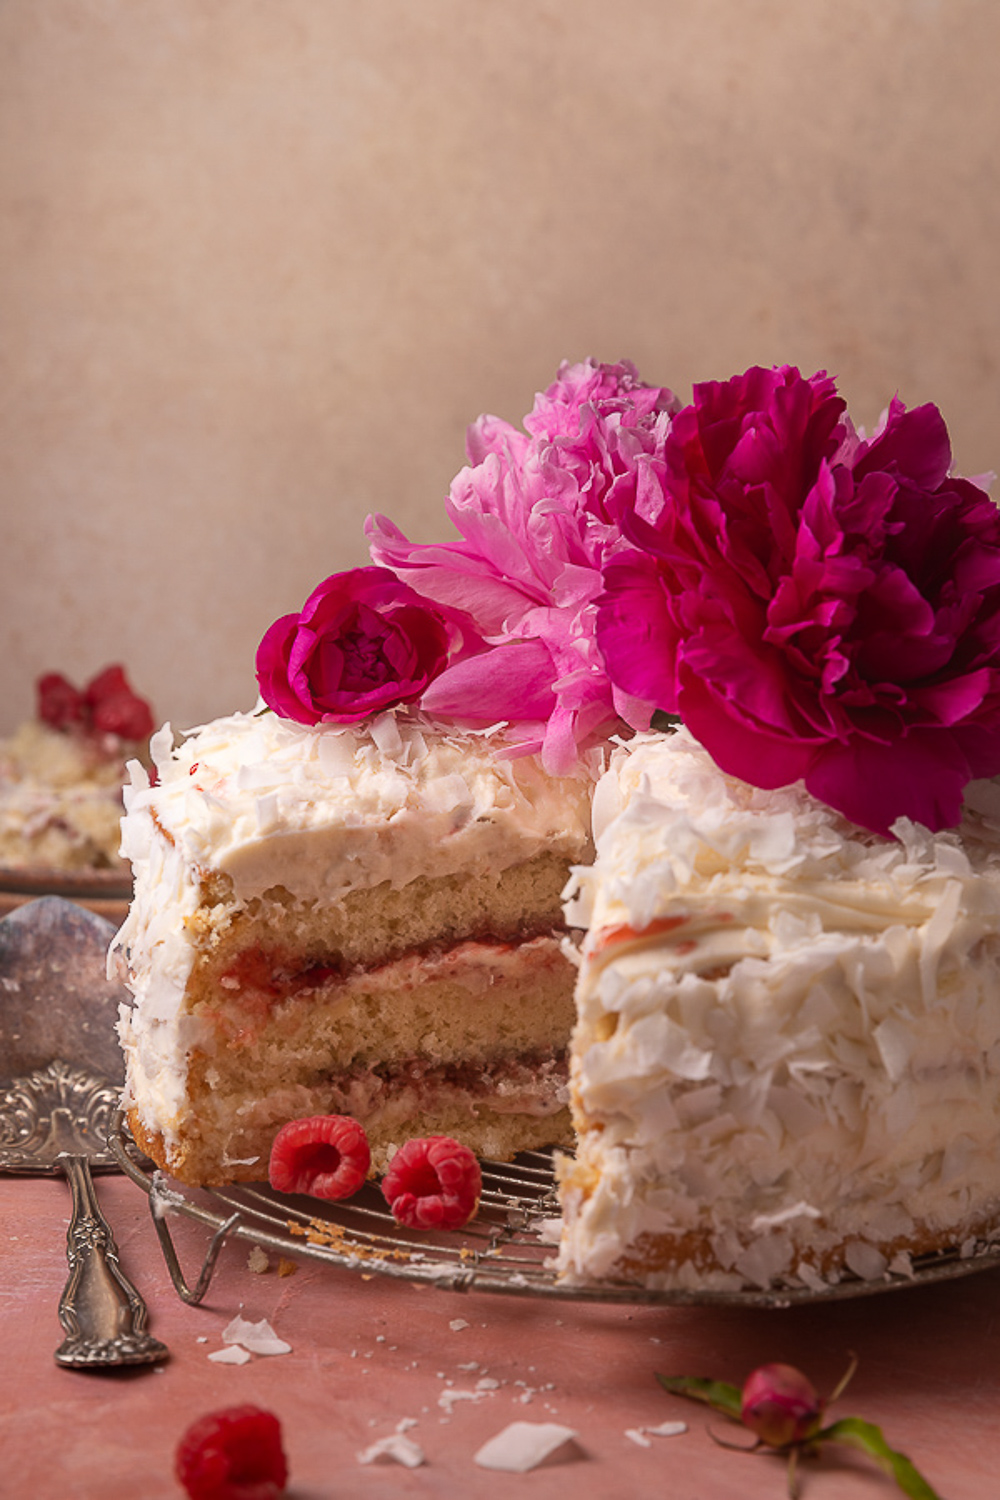 17 absolutely stunning birthday cake recipes that are perfect for almost any occasion!